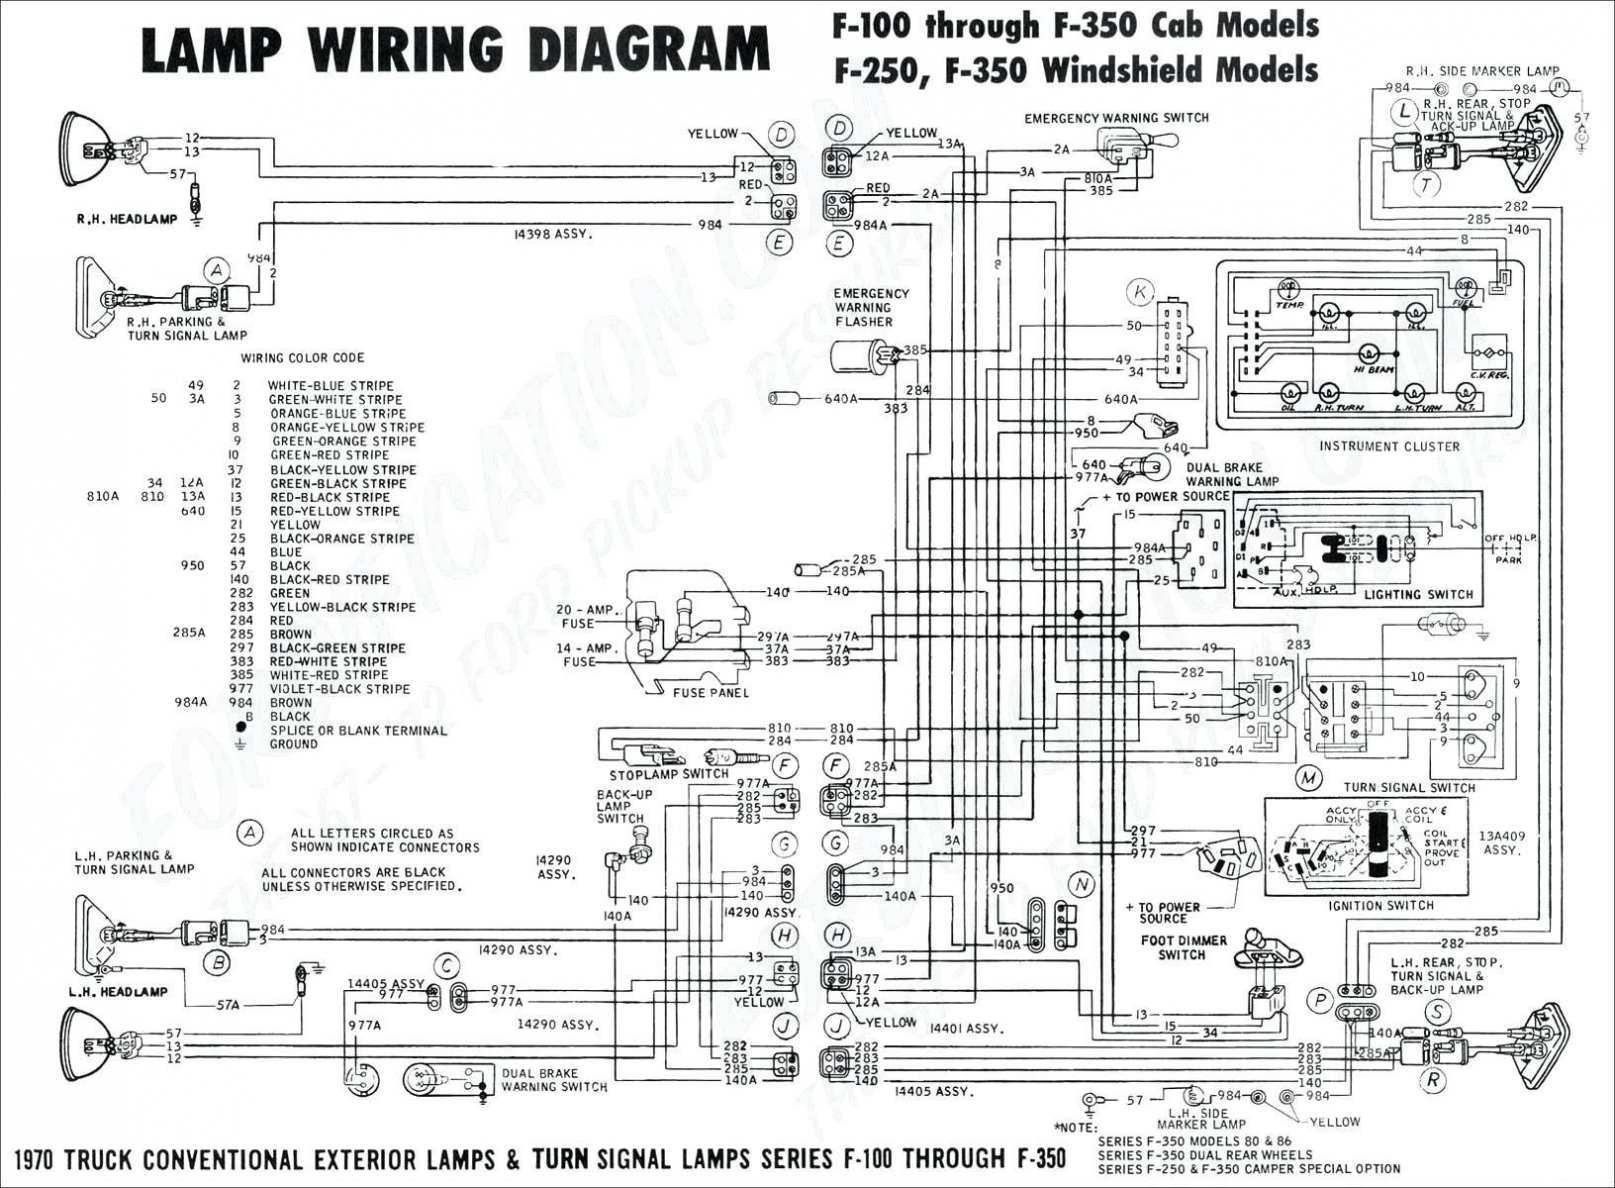 hight resolution of fuse box diagram moreover ford ranger fuel line diagram on 99 sable system diagram as well 2000 ford ranger fuel system diagram likewise